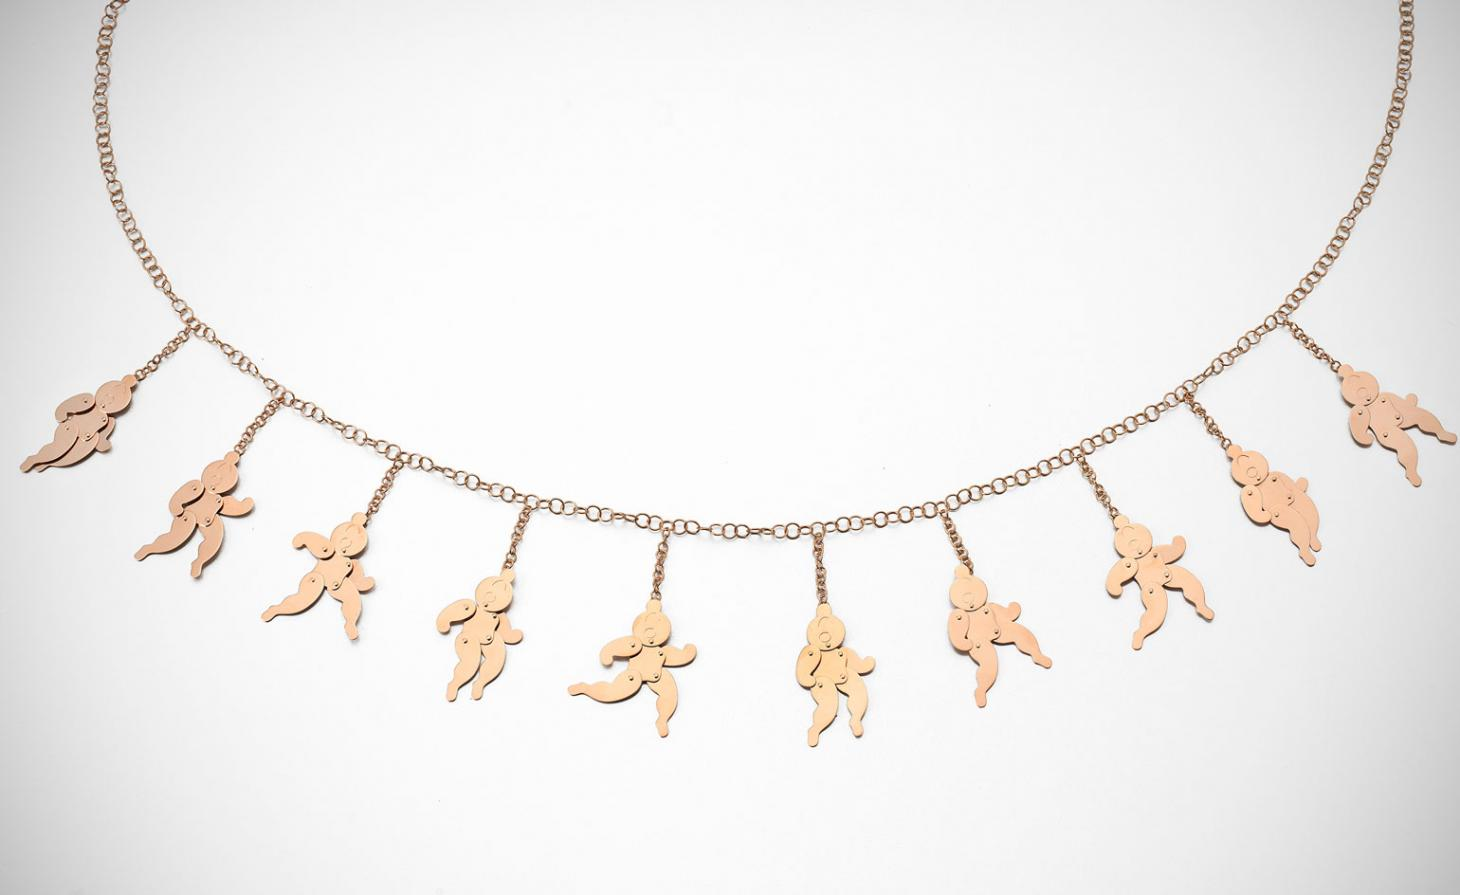 Necklace of small women dancing